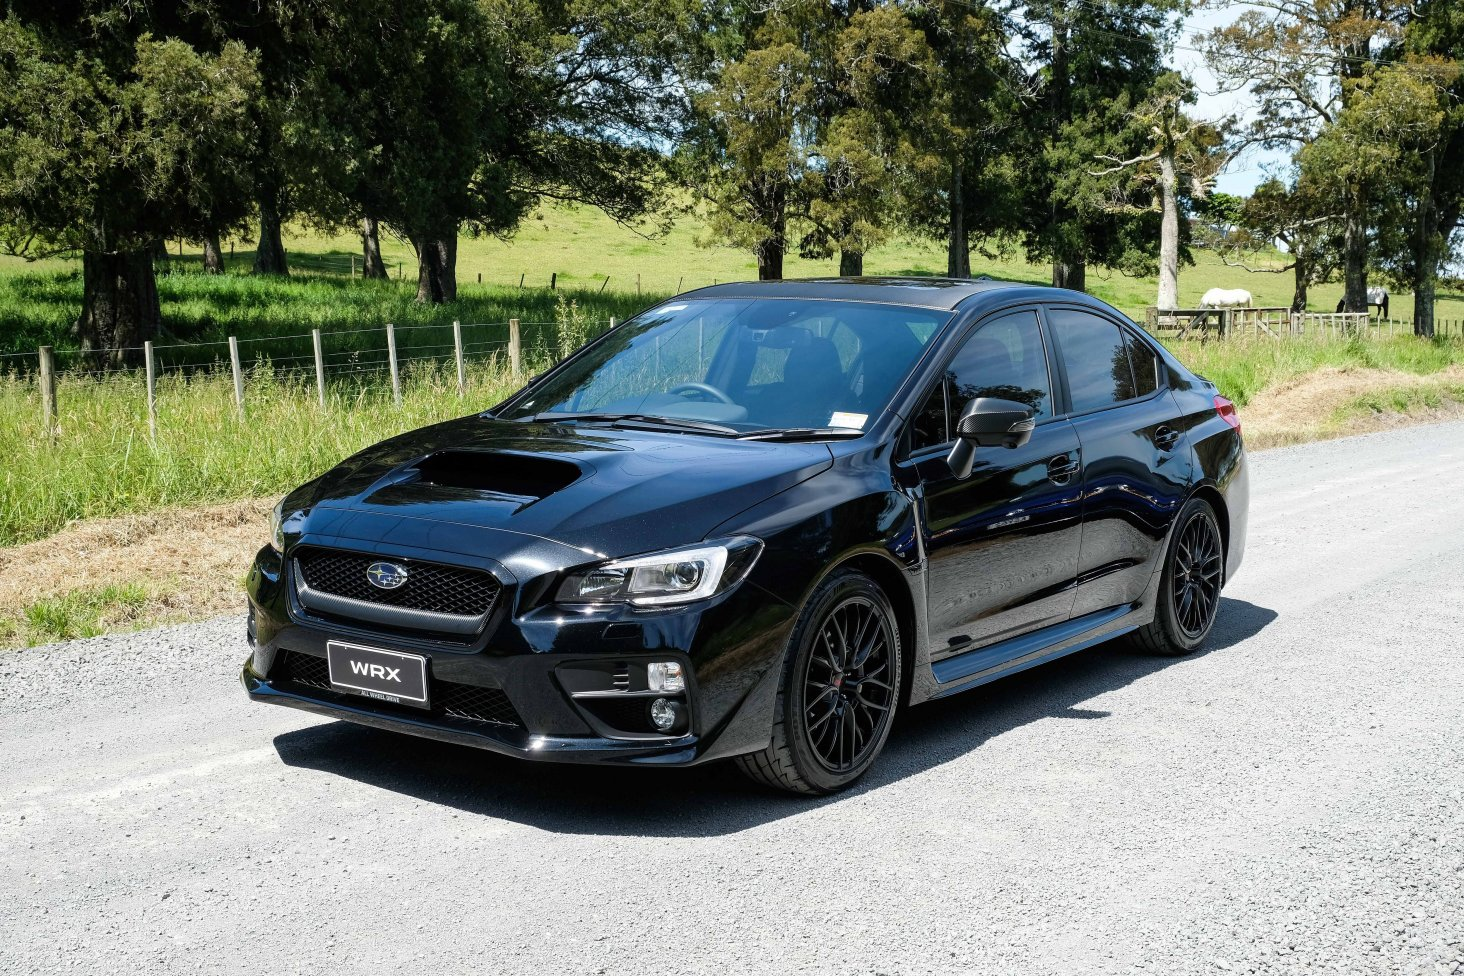 Outback Close To Me >> Limited 25th anniversary Black Edition Subaru WRXs released | Subaru of New Zealand